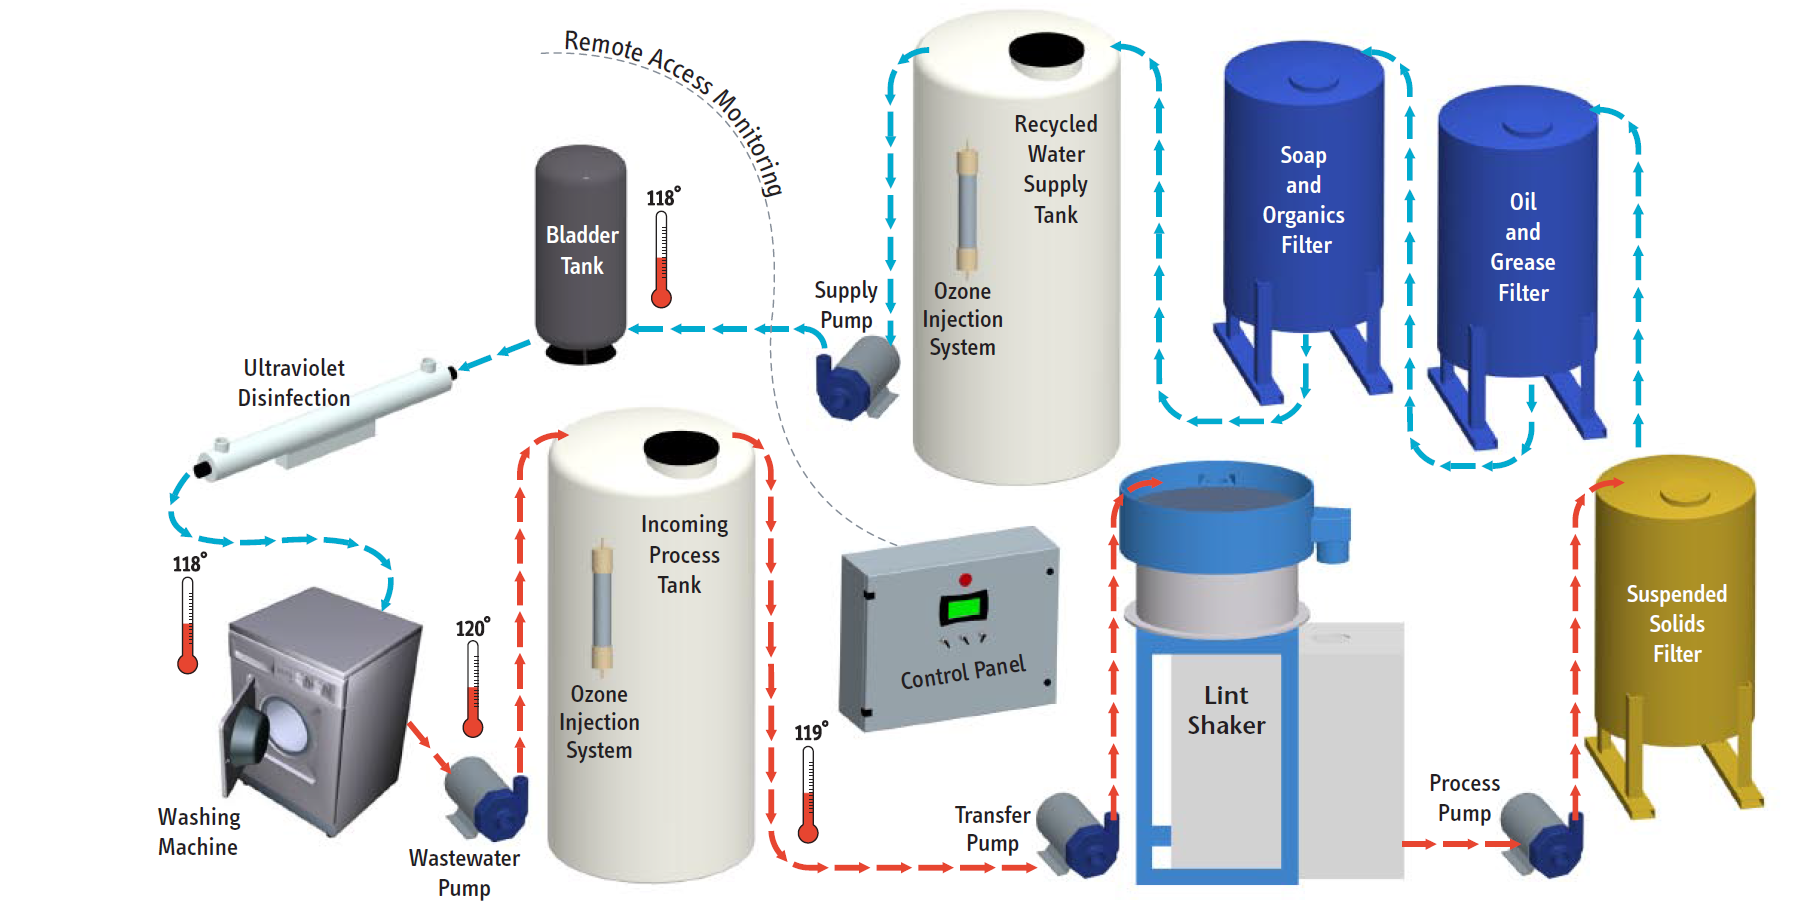 Aquarecyle graphic of recycling process